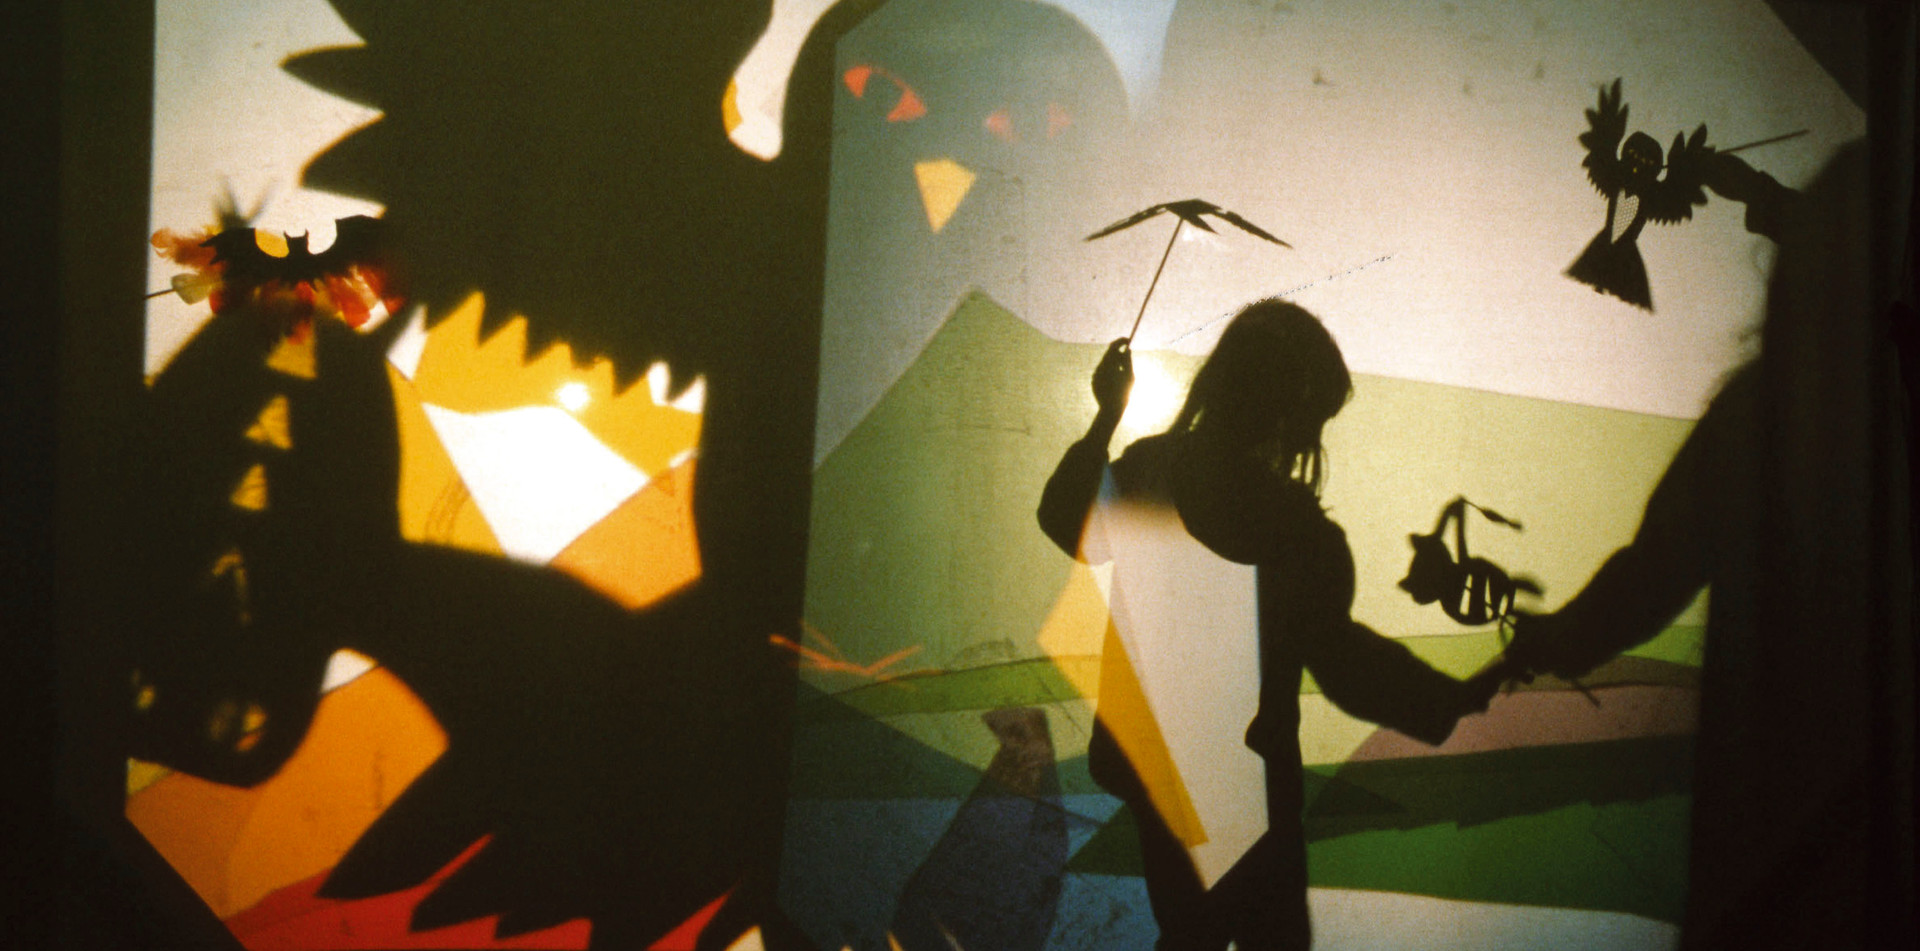 Shadow puppetry in Portugal